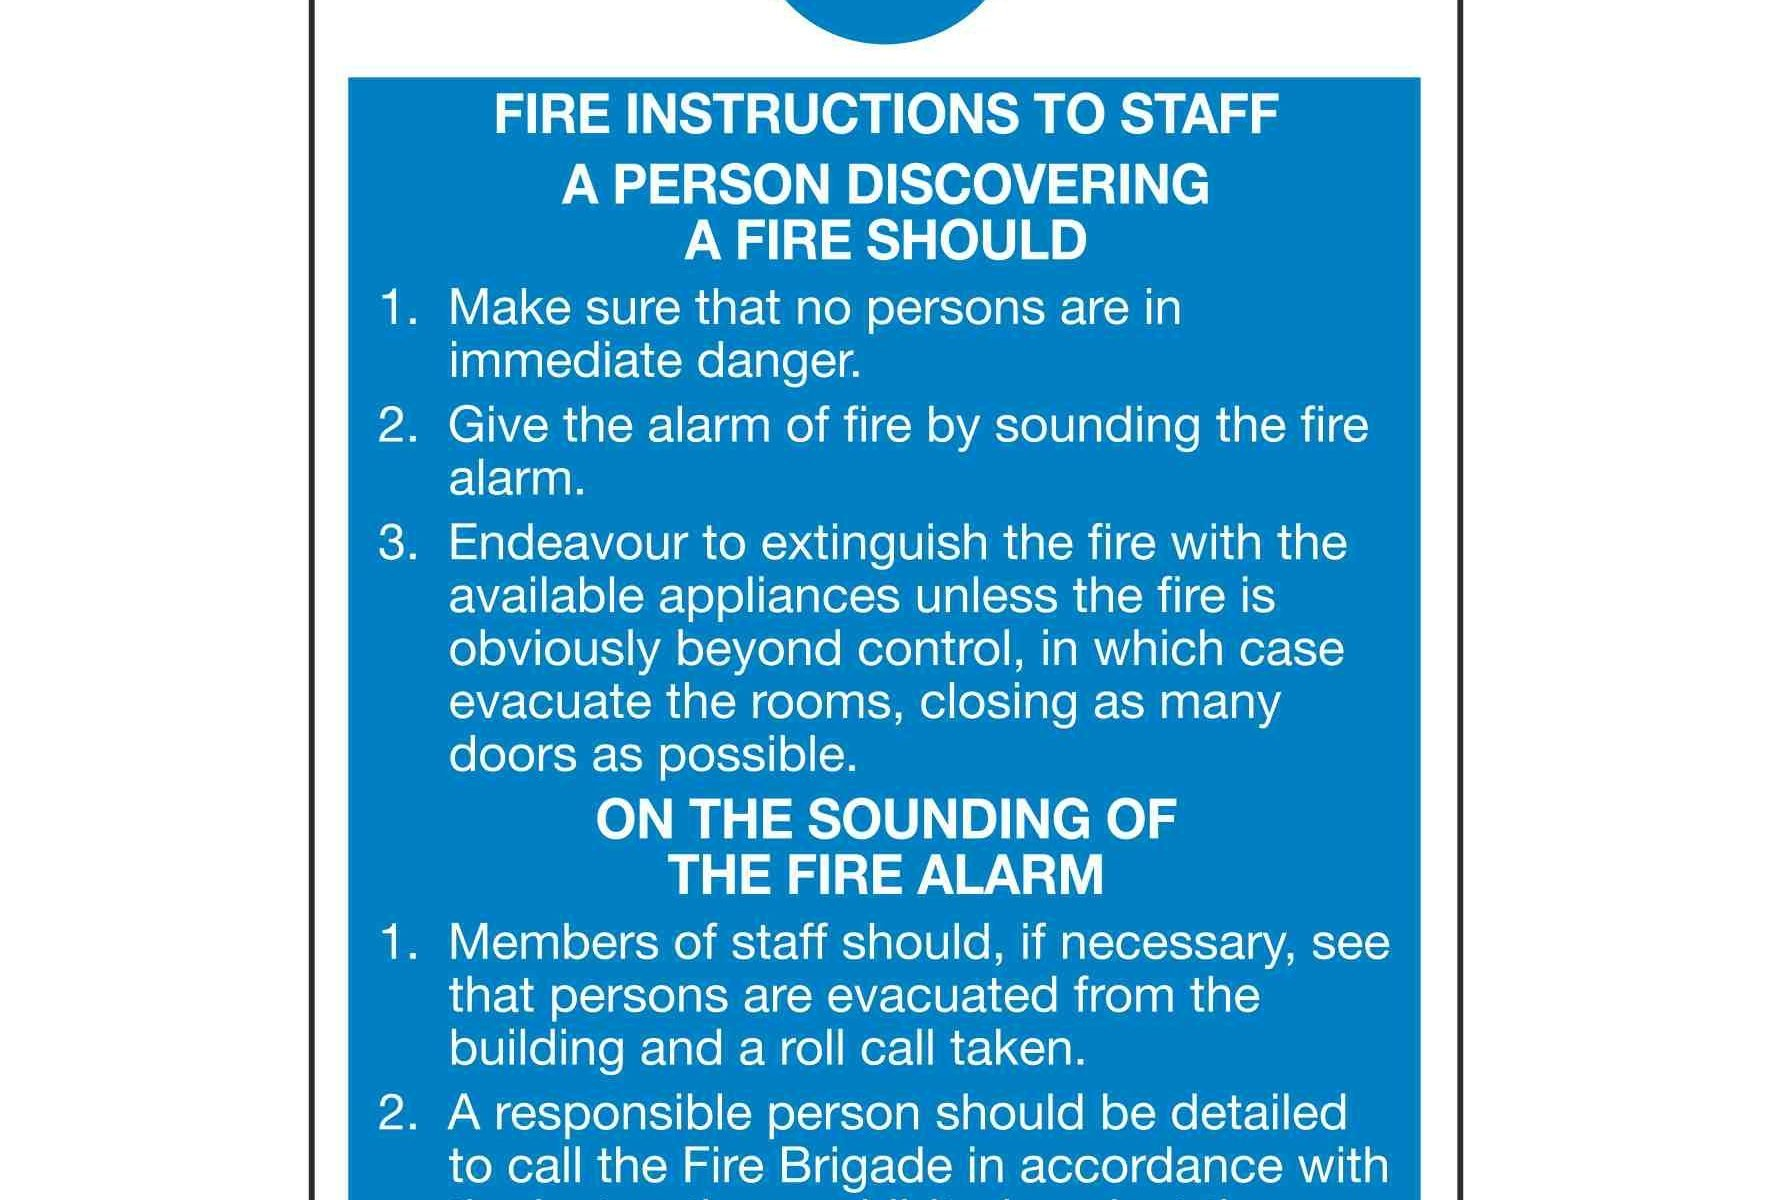 Fire Action FIRE INSTRUCTIONS TO STAFF A PERSON DISCOVERING A FIRE SHOULD